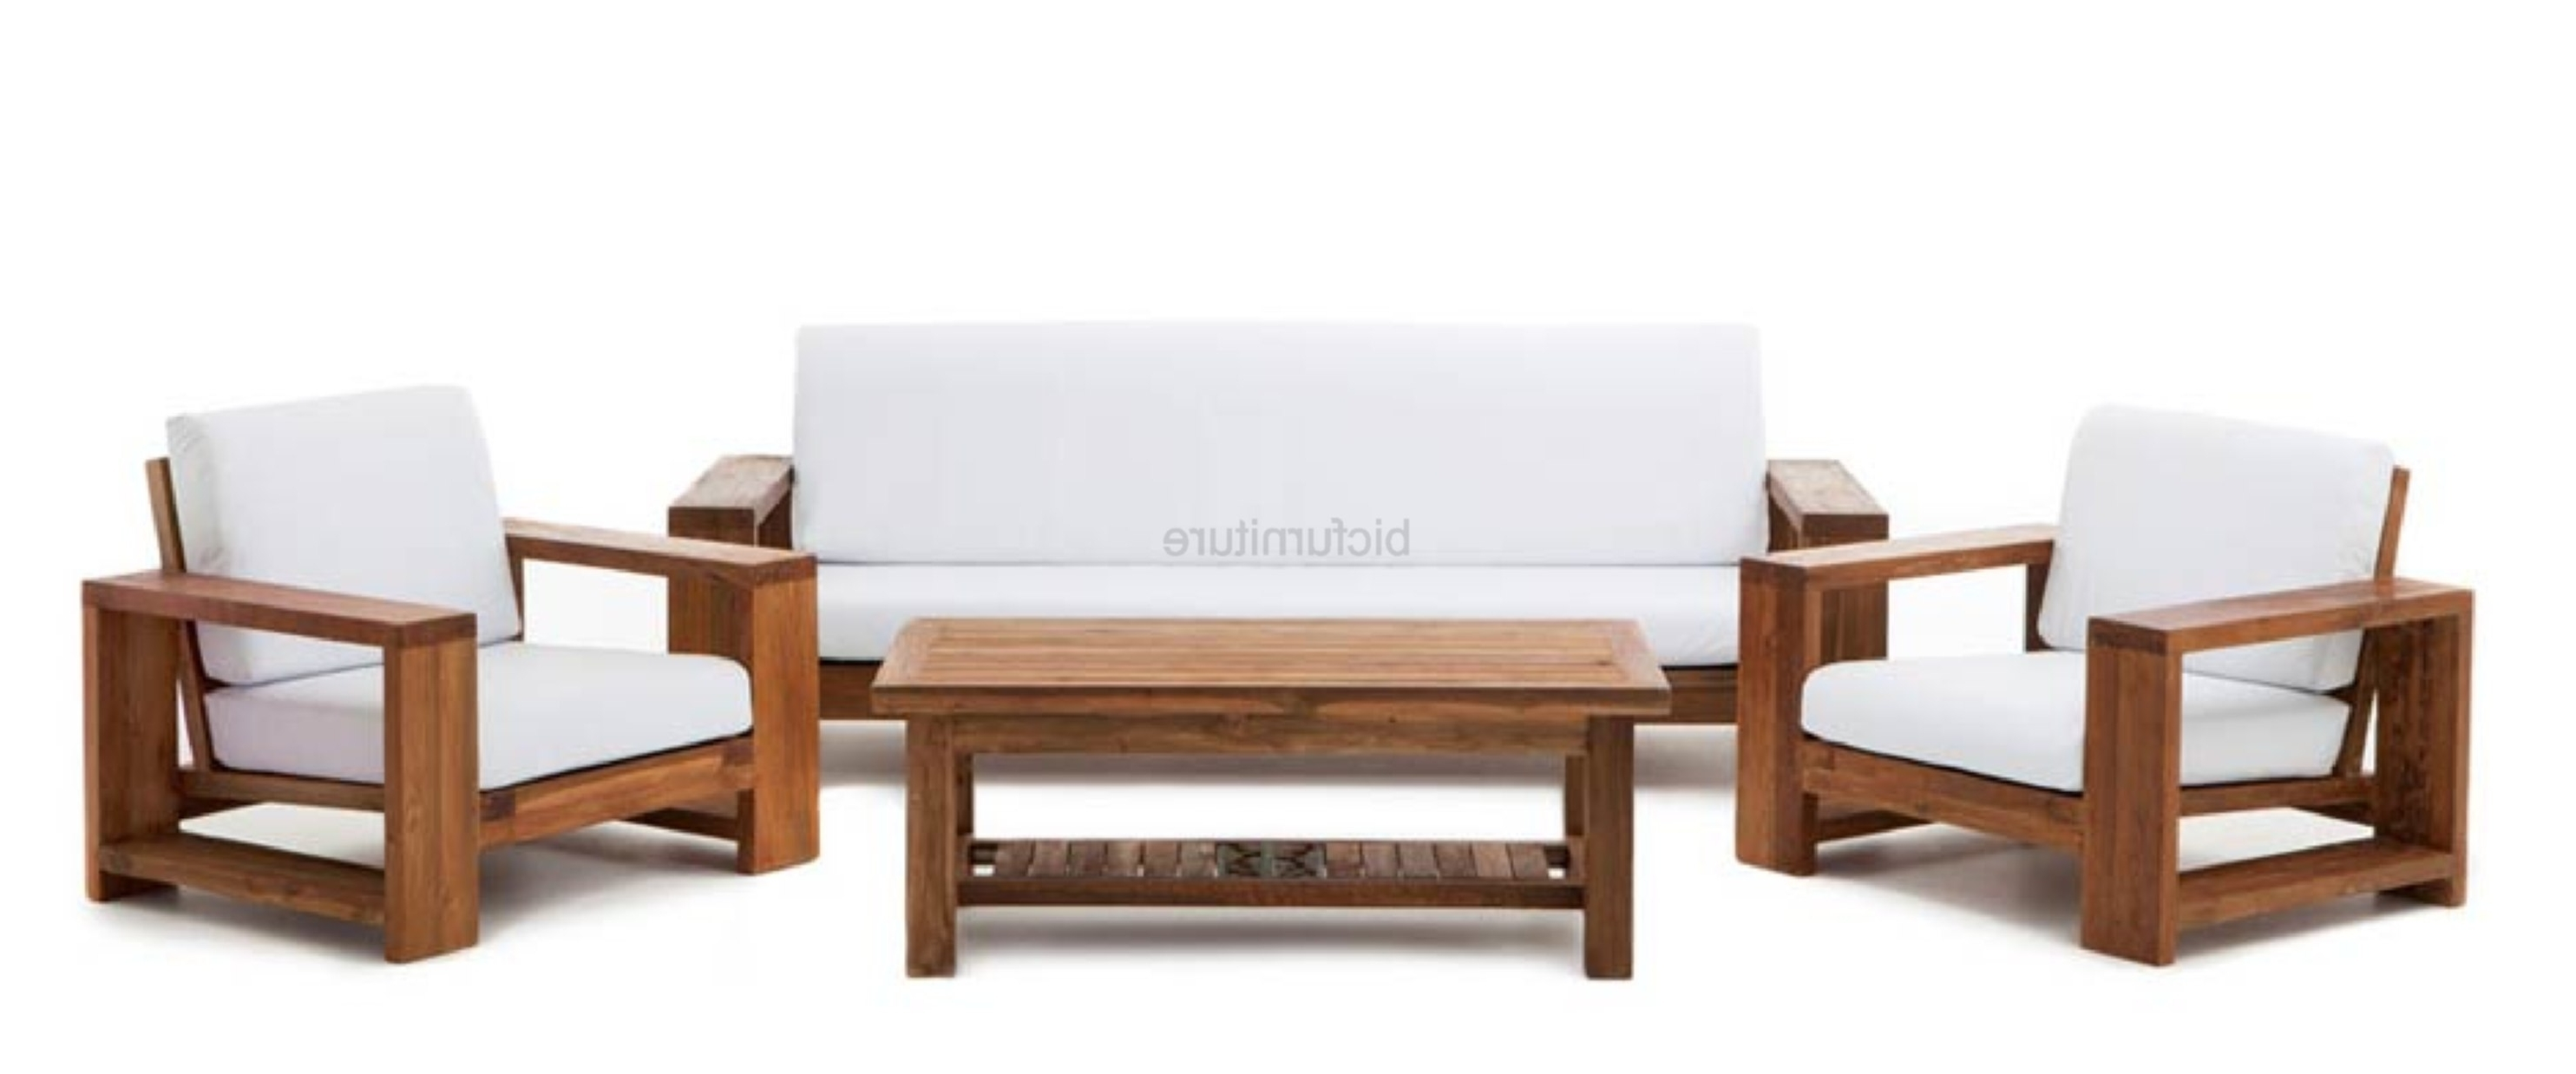 Preferred Comfortable Sofas And Chairs Within Teak Wood Furniture Designs Unique Teak Wood Sofa Set Designs (View 14 of 15)